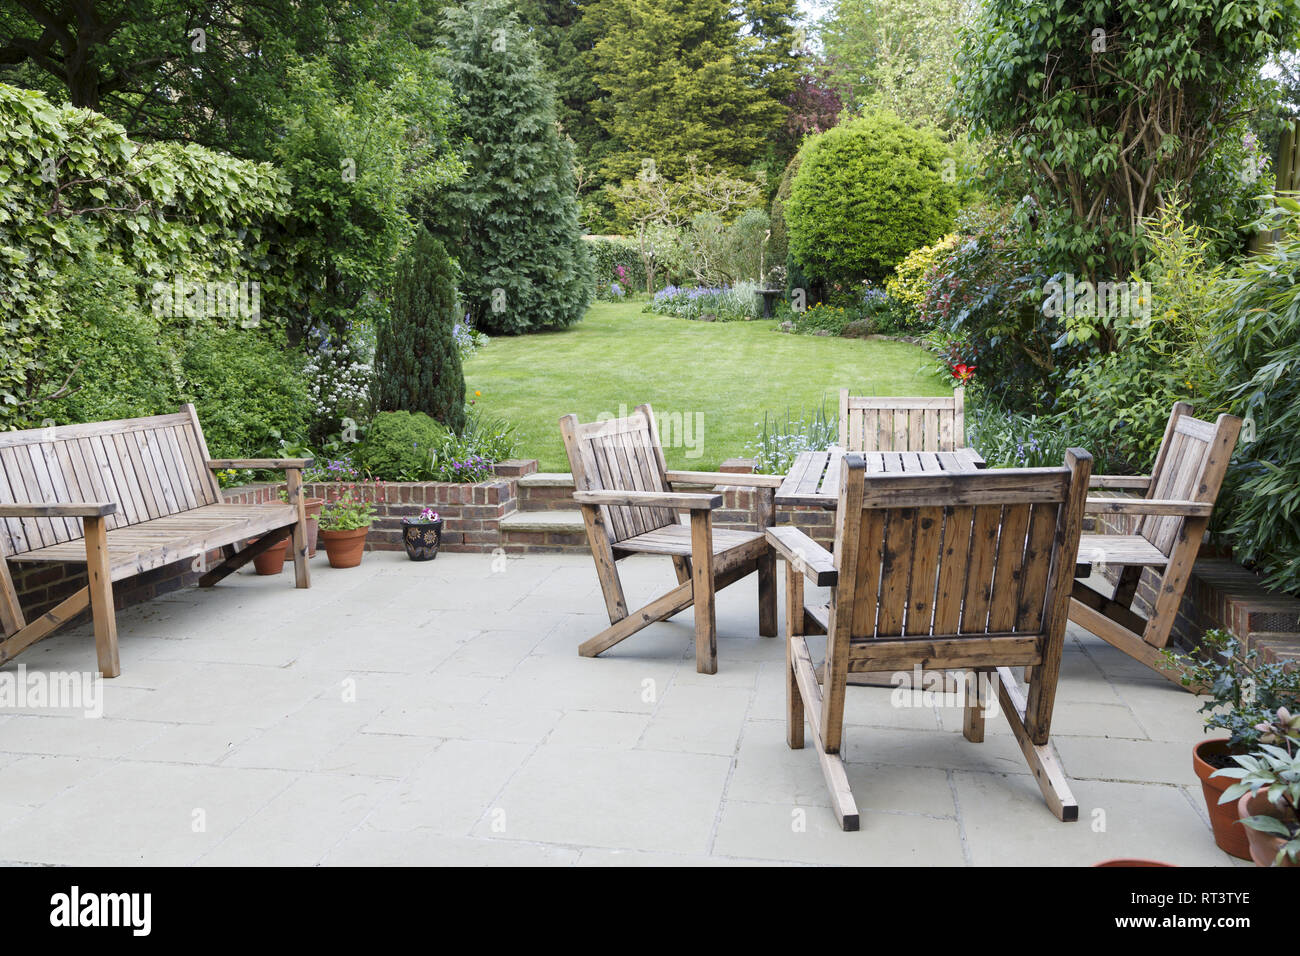 Wooden Garden Furniture High Resolution Stock Photography And Images Alamy